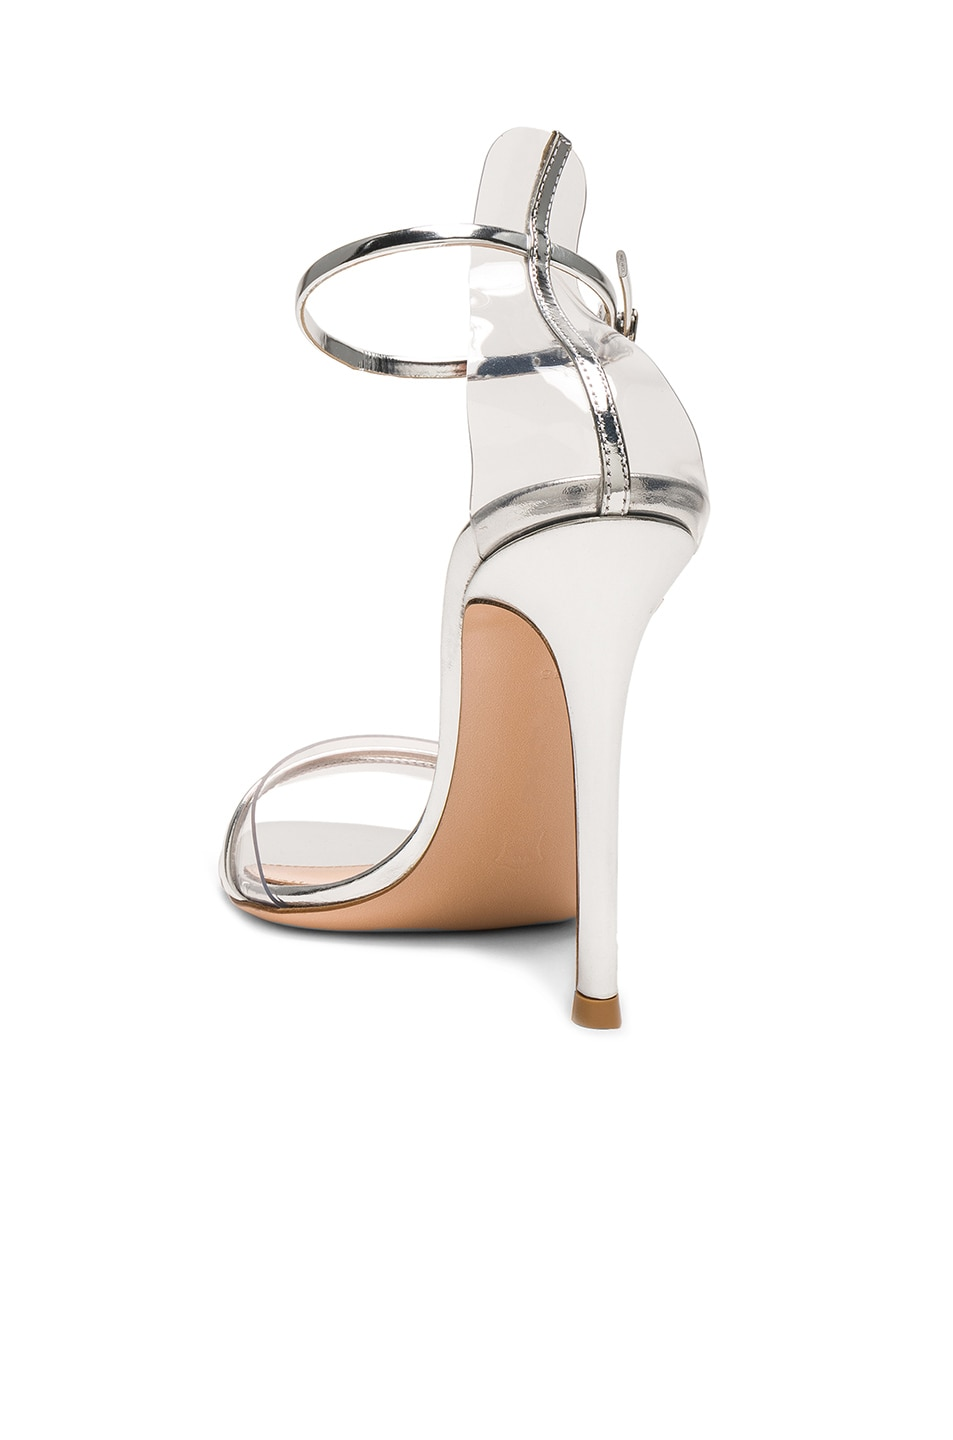 Image 3 of Gianvito Rossi Leather Plexi G-String Heels in Metal Silver & Transparent